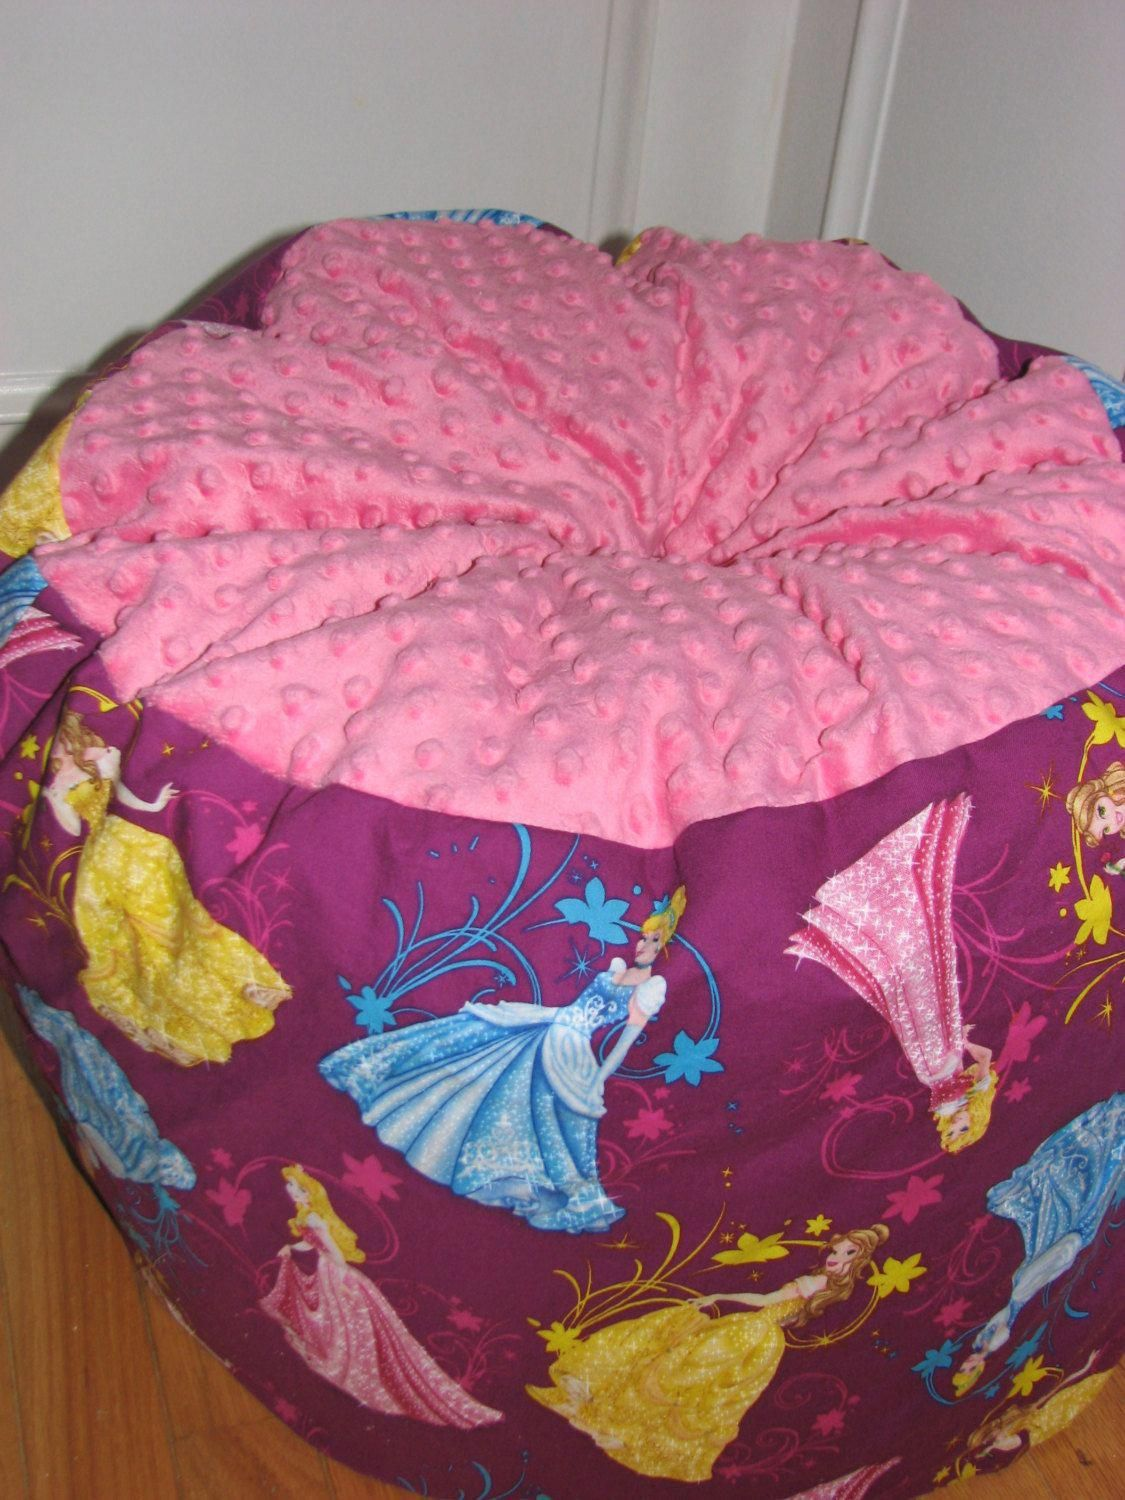 Disney Princess Bean Bag Chair For Kids Ages 8 By Beanbagsgalore 45 00 Smallbeanbagchairs Adirondack